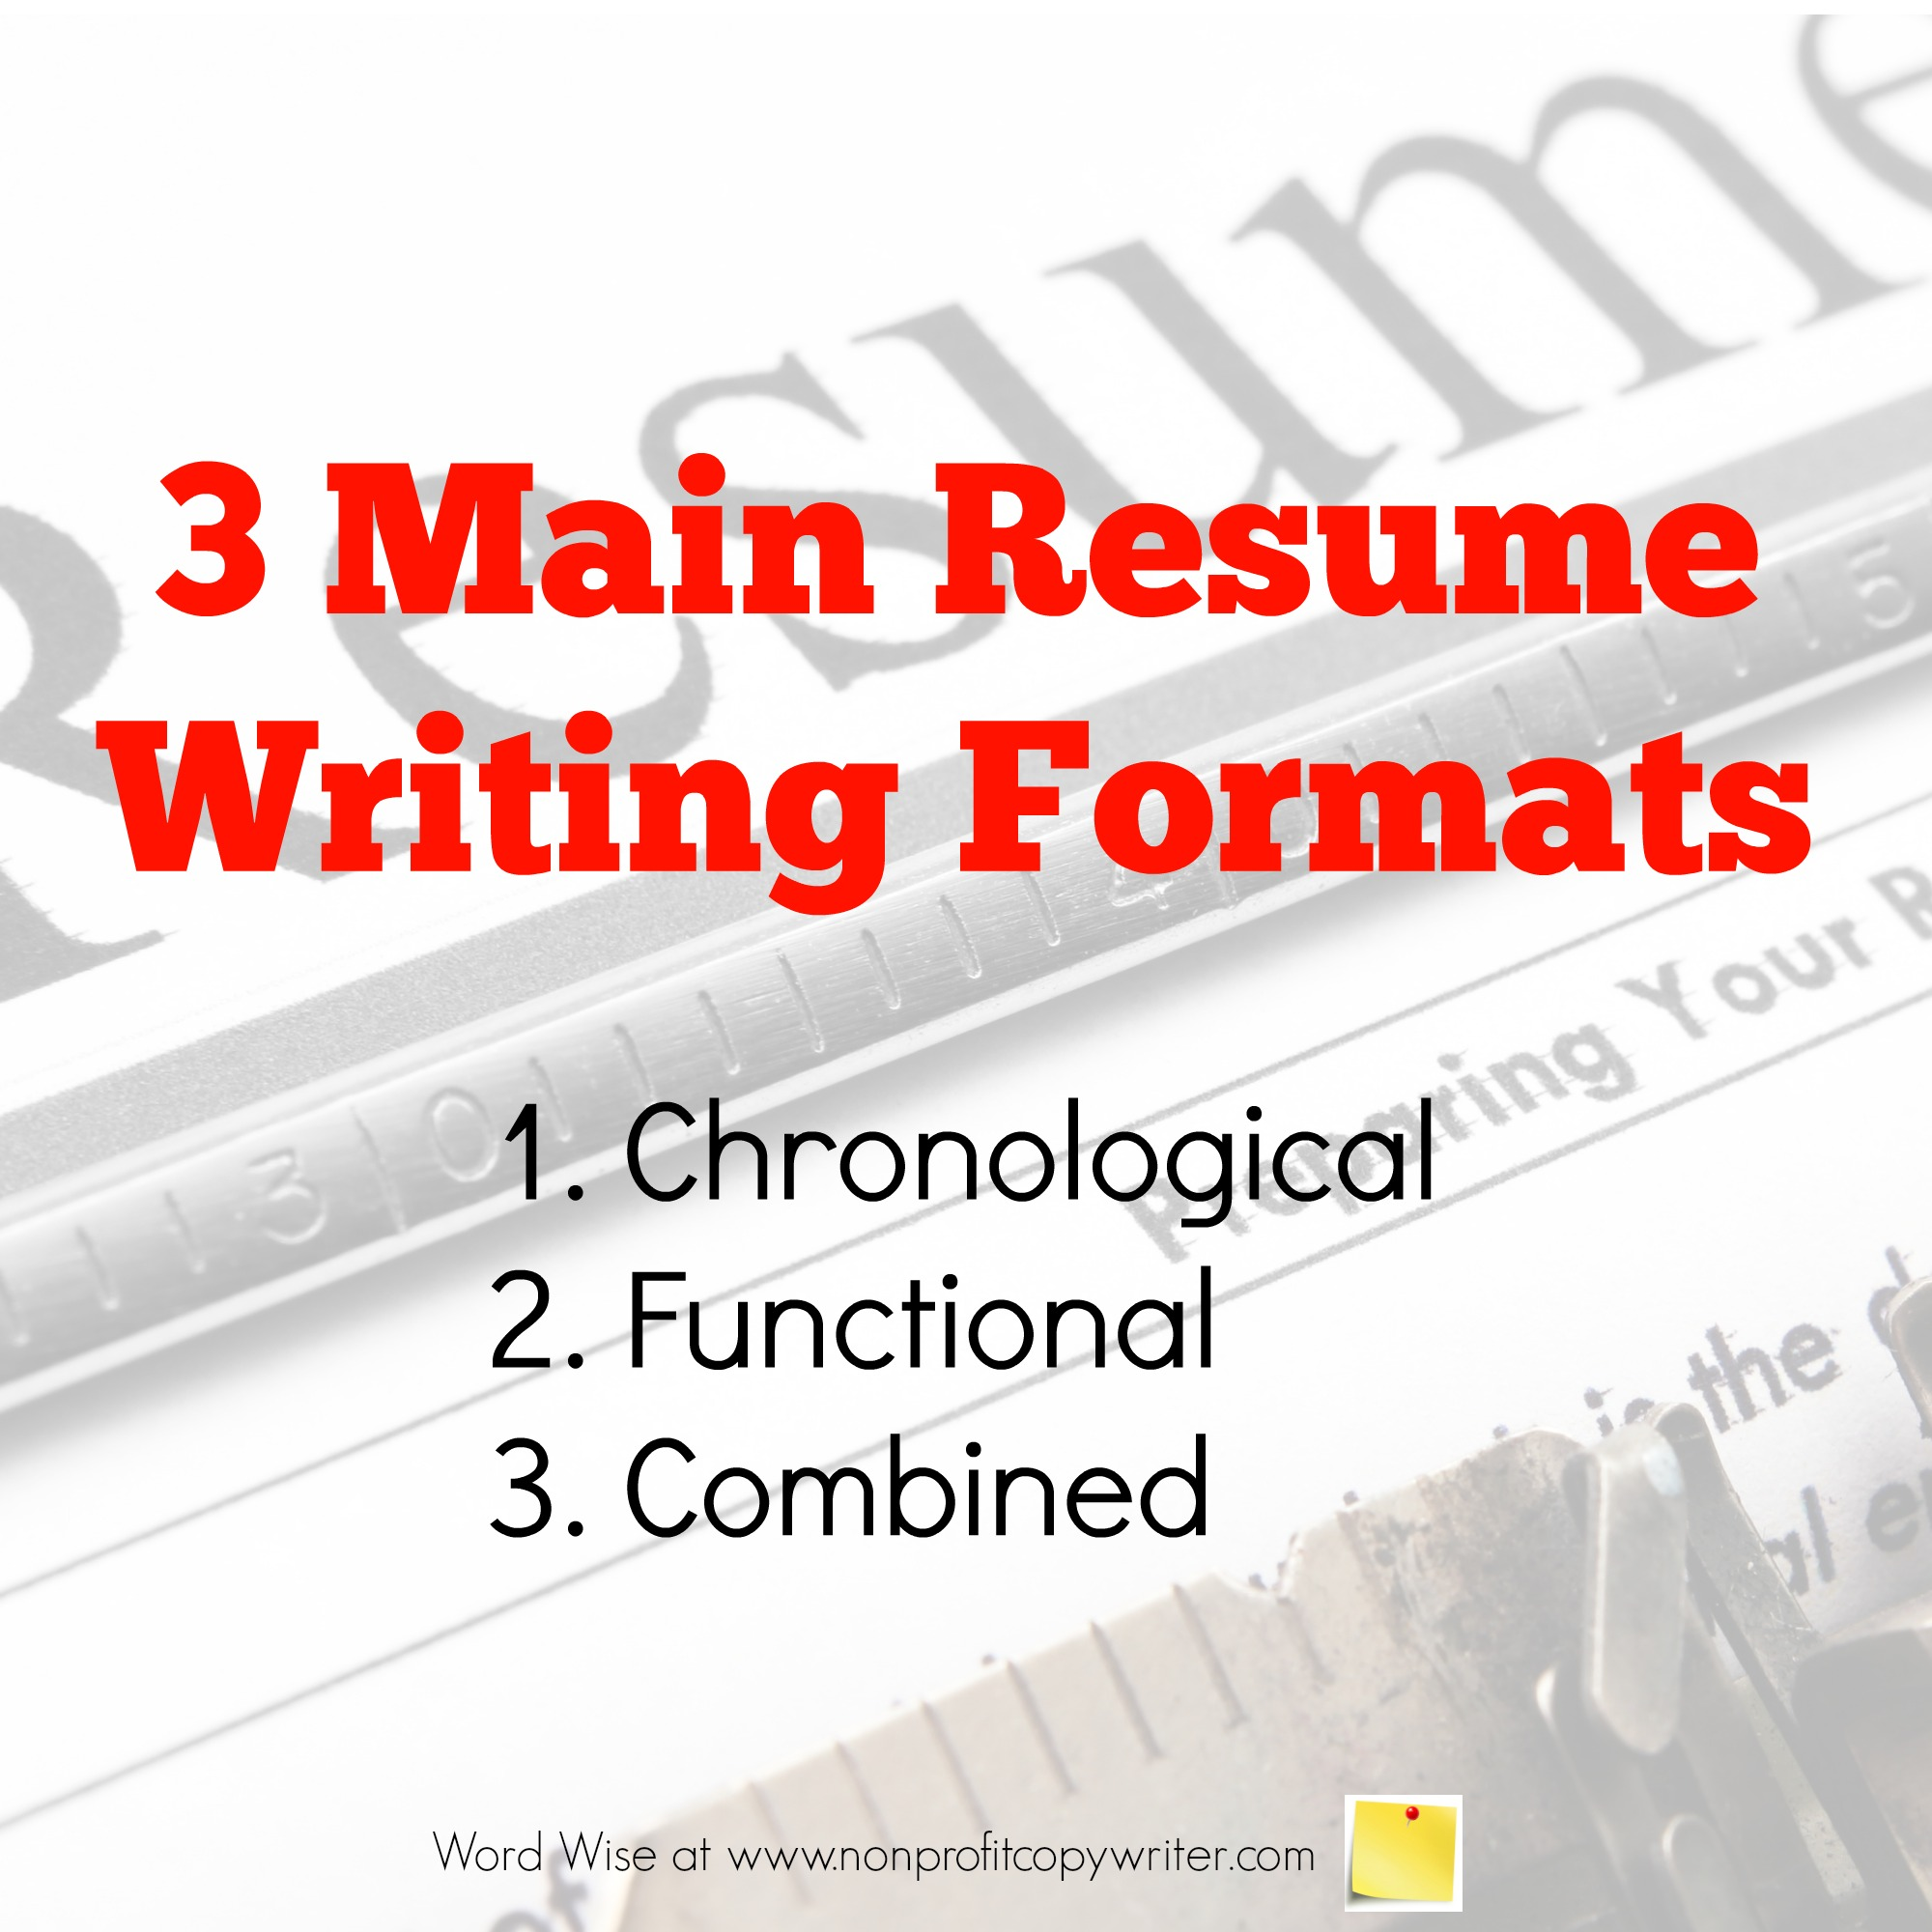 three main resume writing formats 3 main resume writing formats word wise at nonprofit copywriter